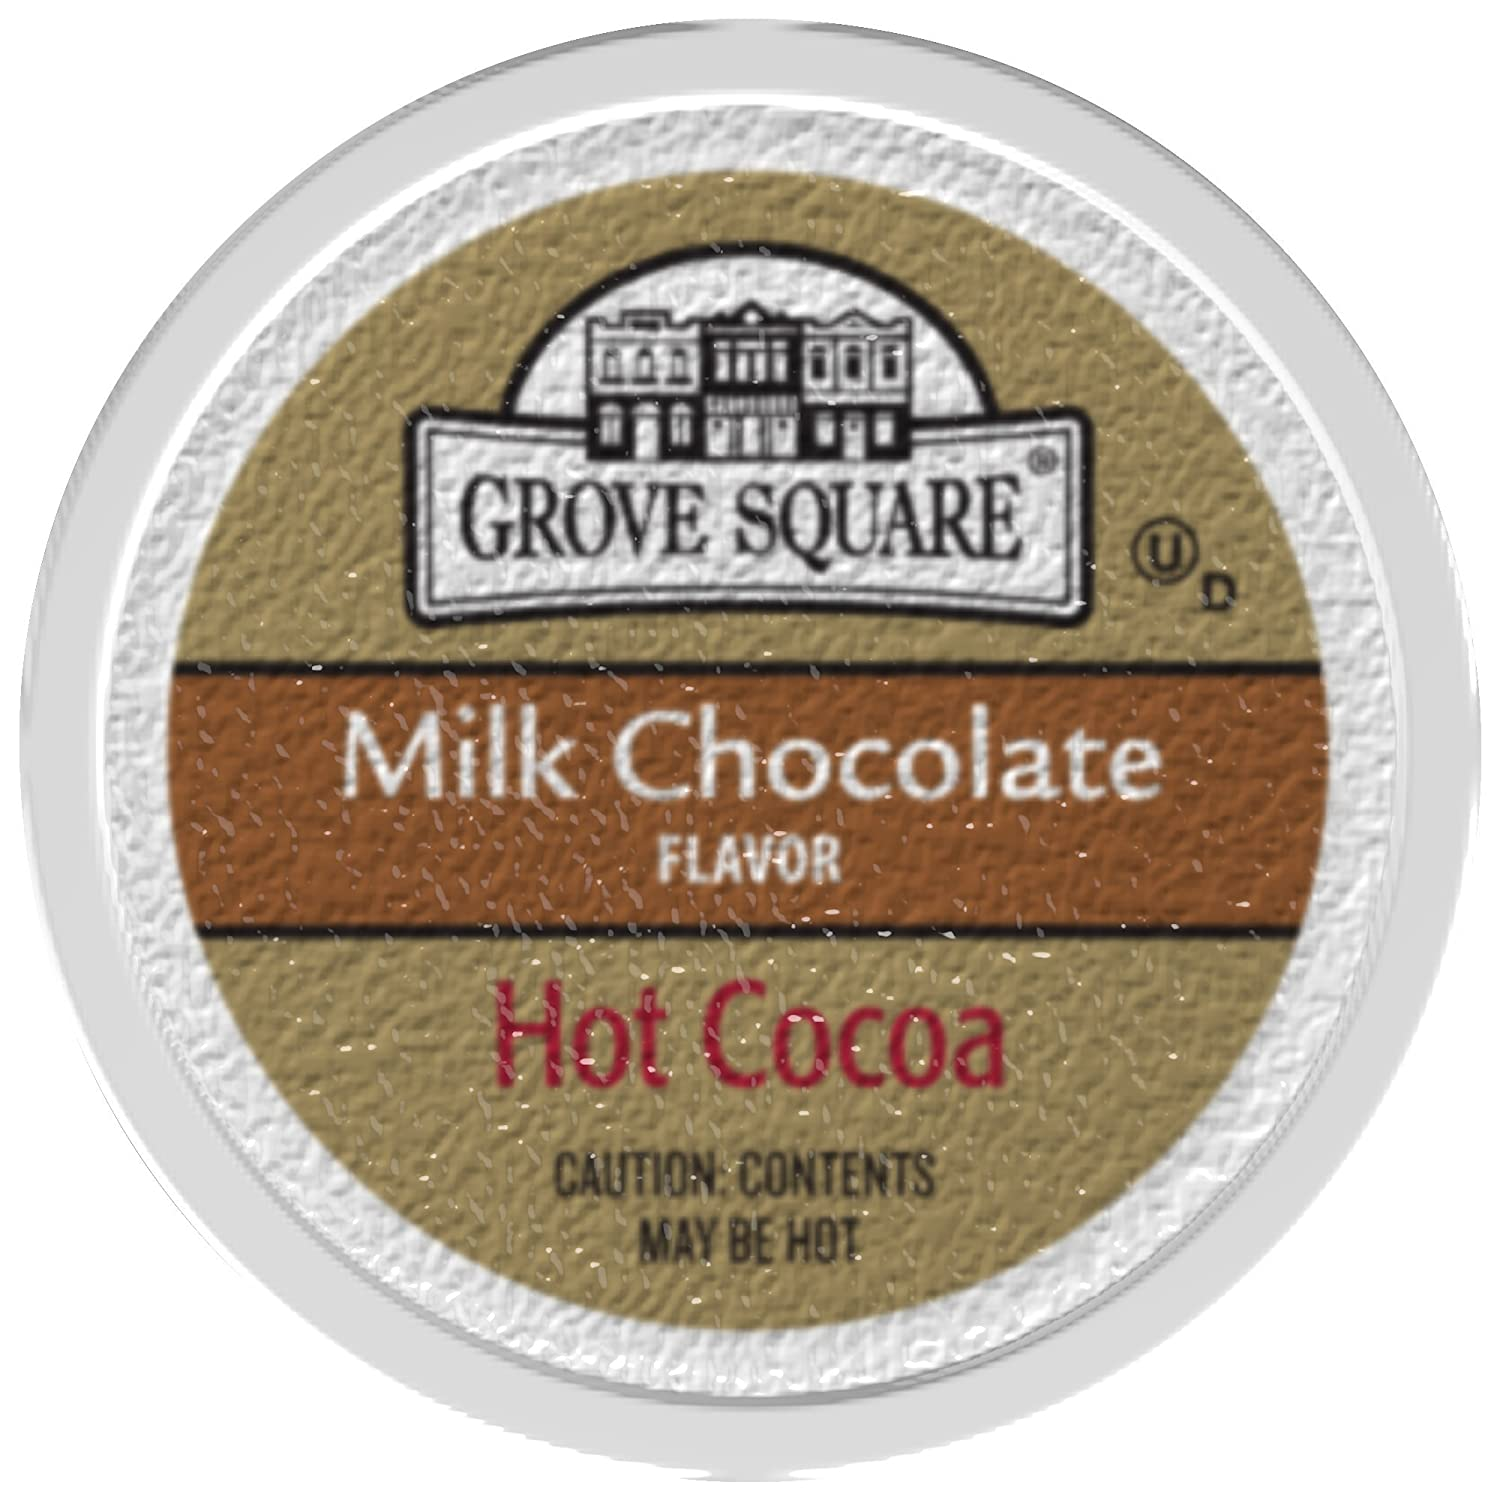 Amazon.com : Grove Square Hot Cocoa, Milk Chocolate, 24 Single ...